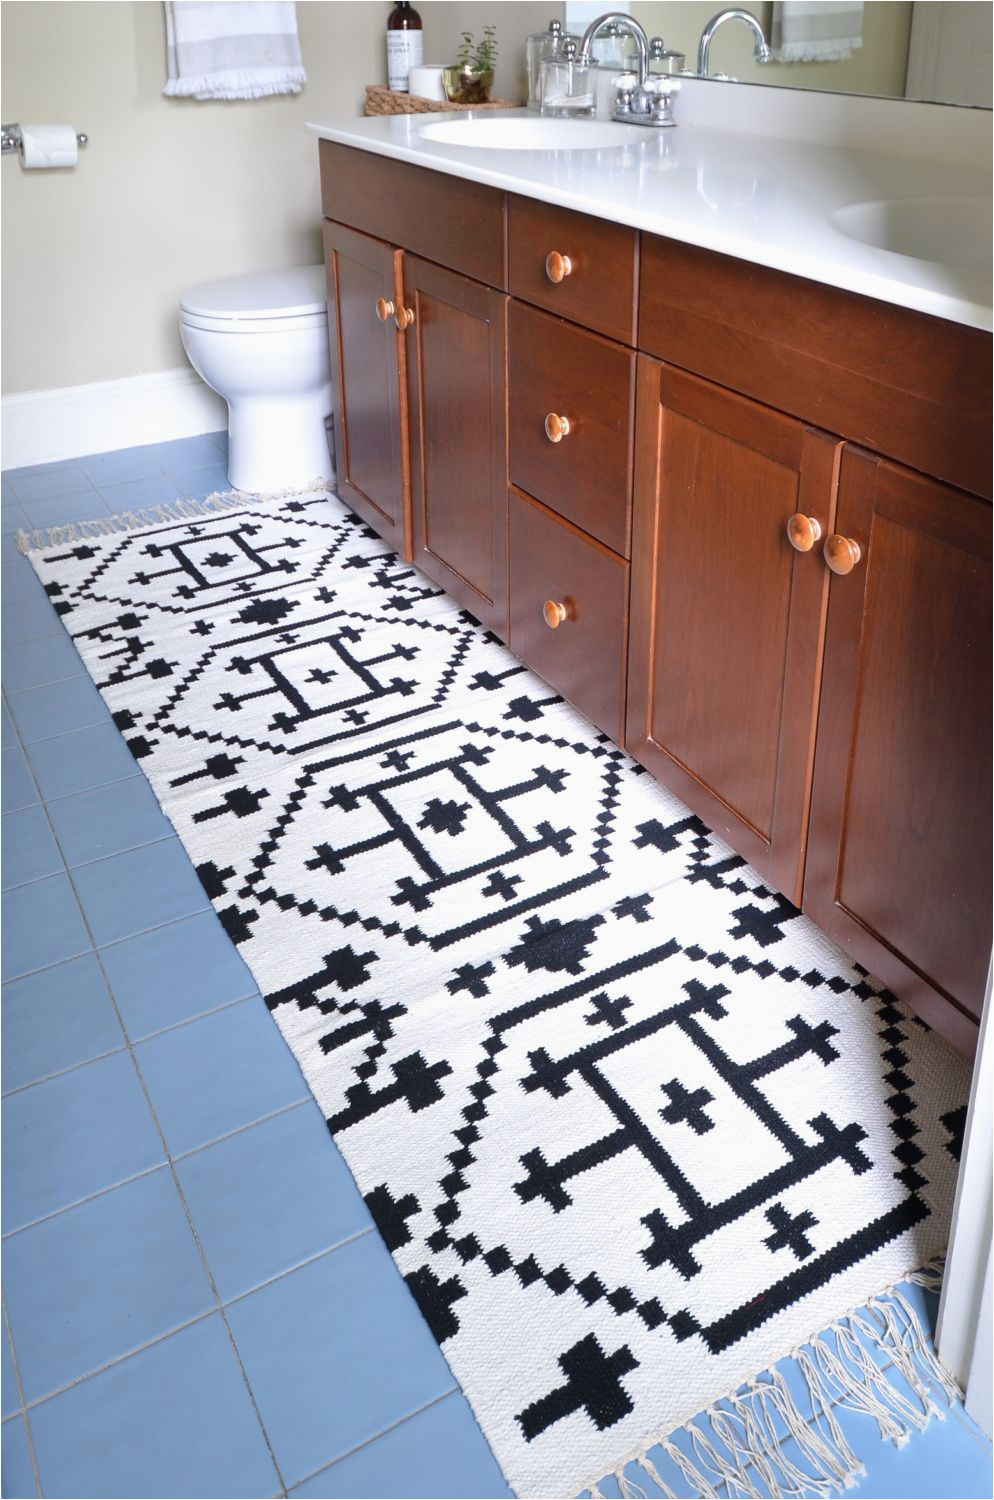 Custom Size Bath Rugs How to Sew Two Small Rugs to Her to Make A Custom Runner